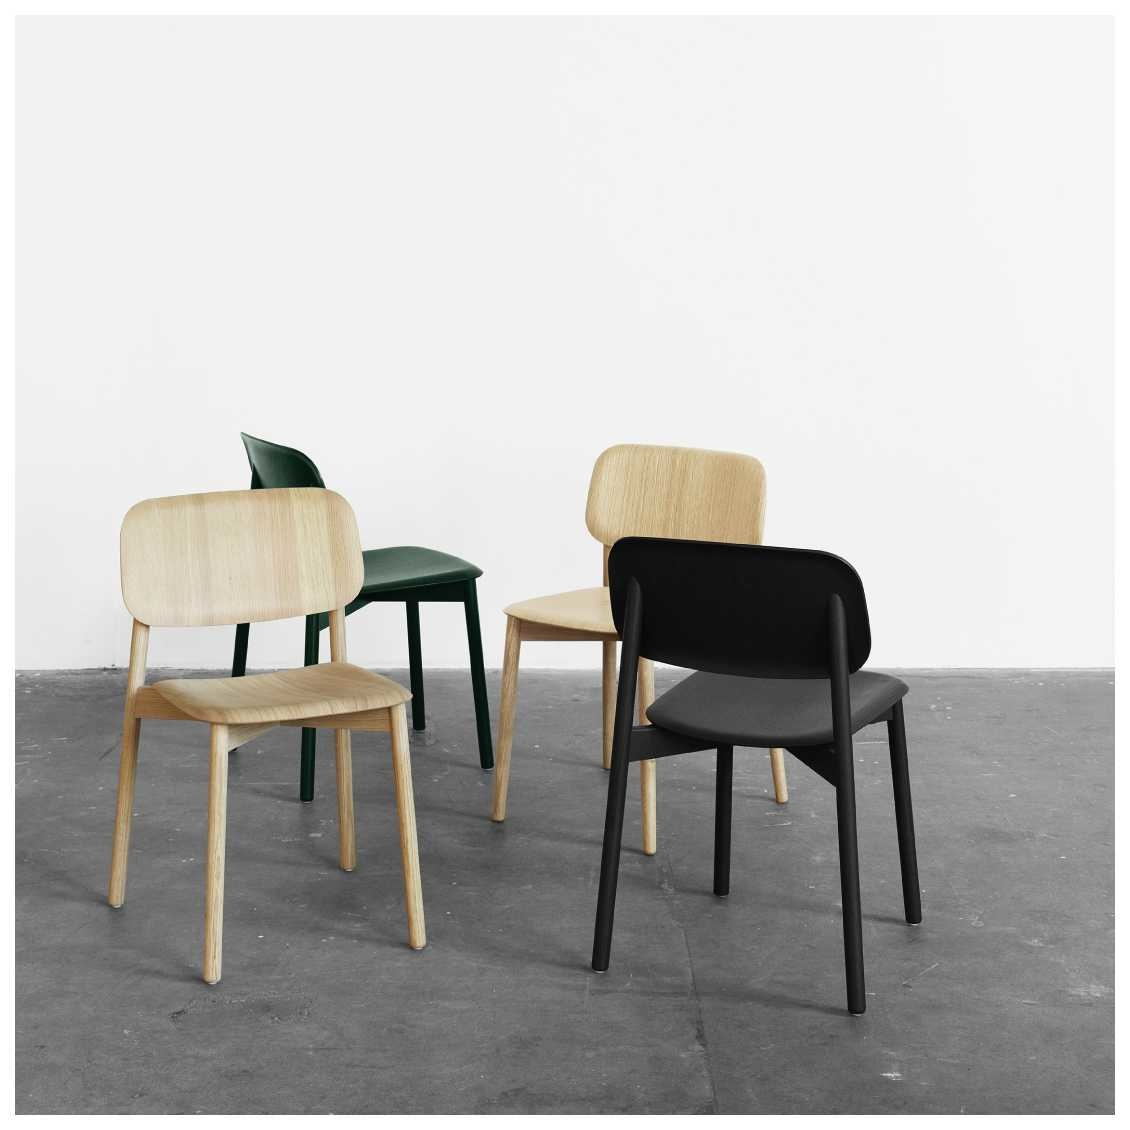 About A Chair 12 Side Chair.Soft Edge 12 Chair Nordic New